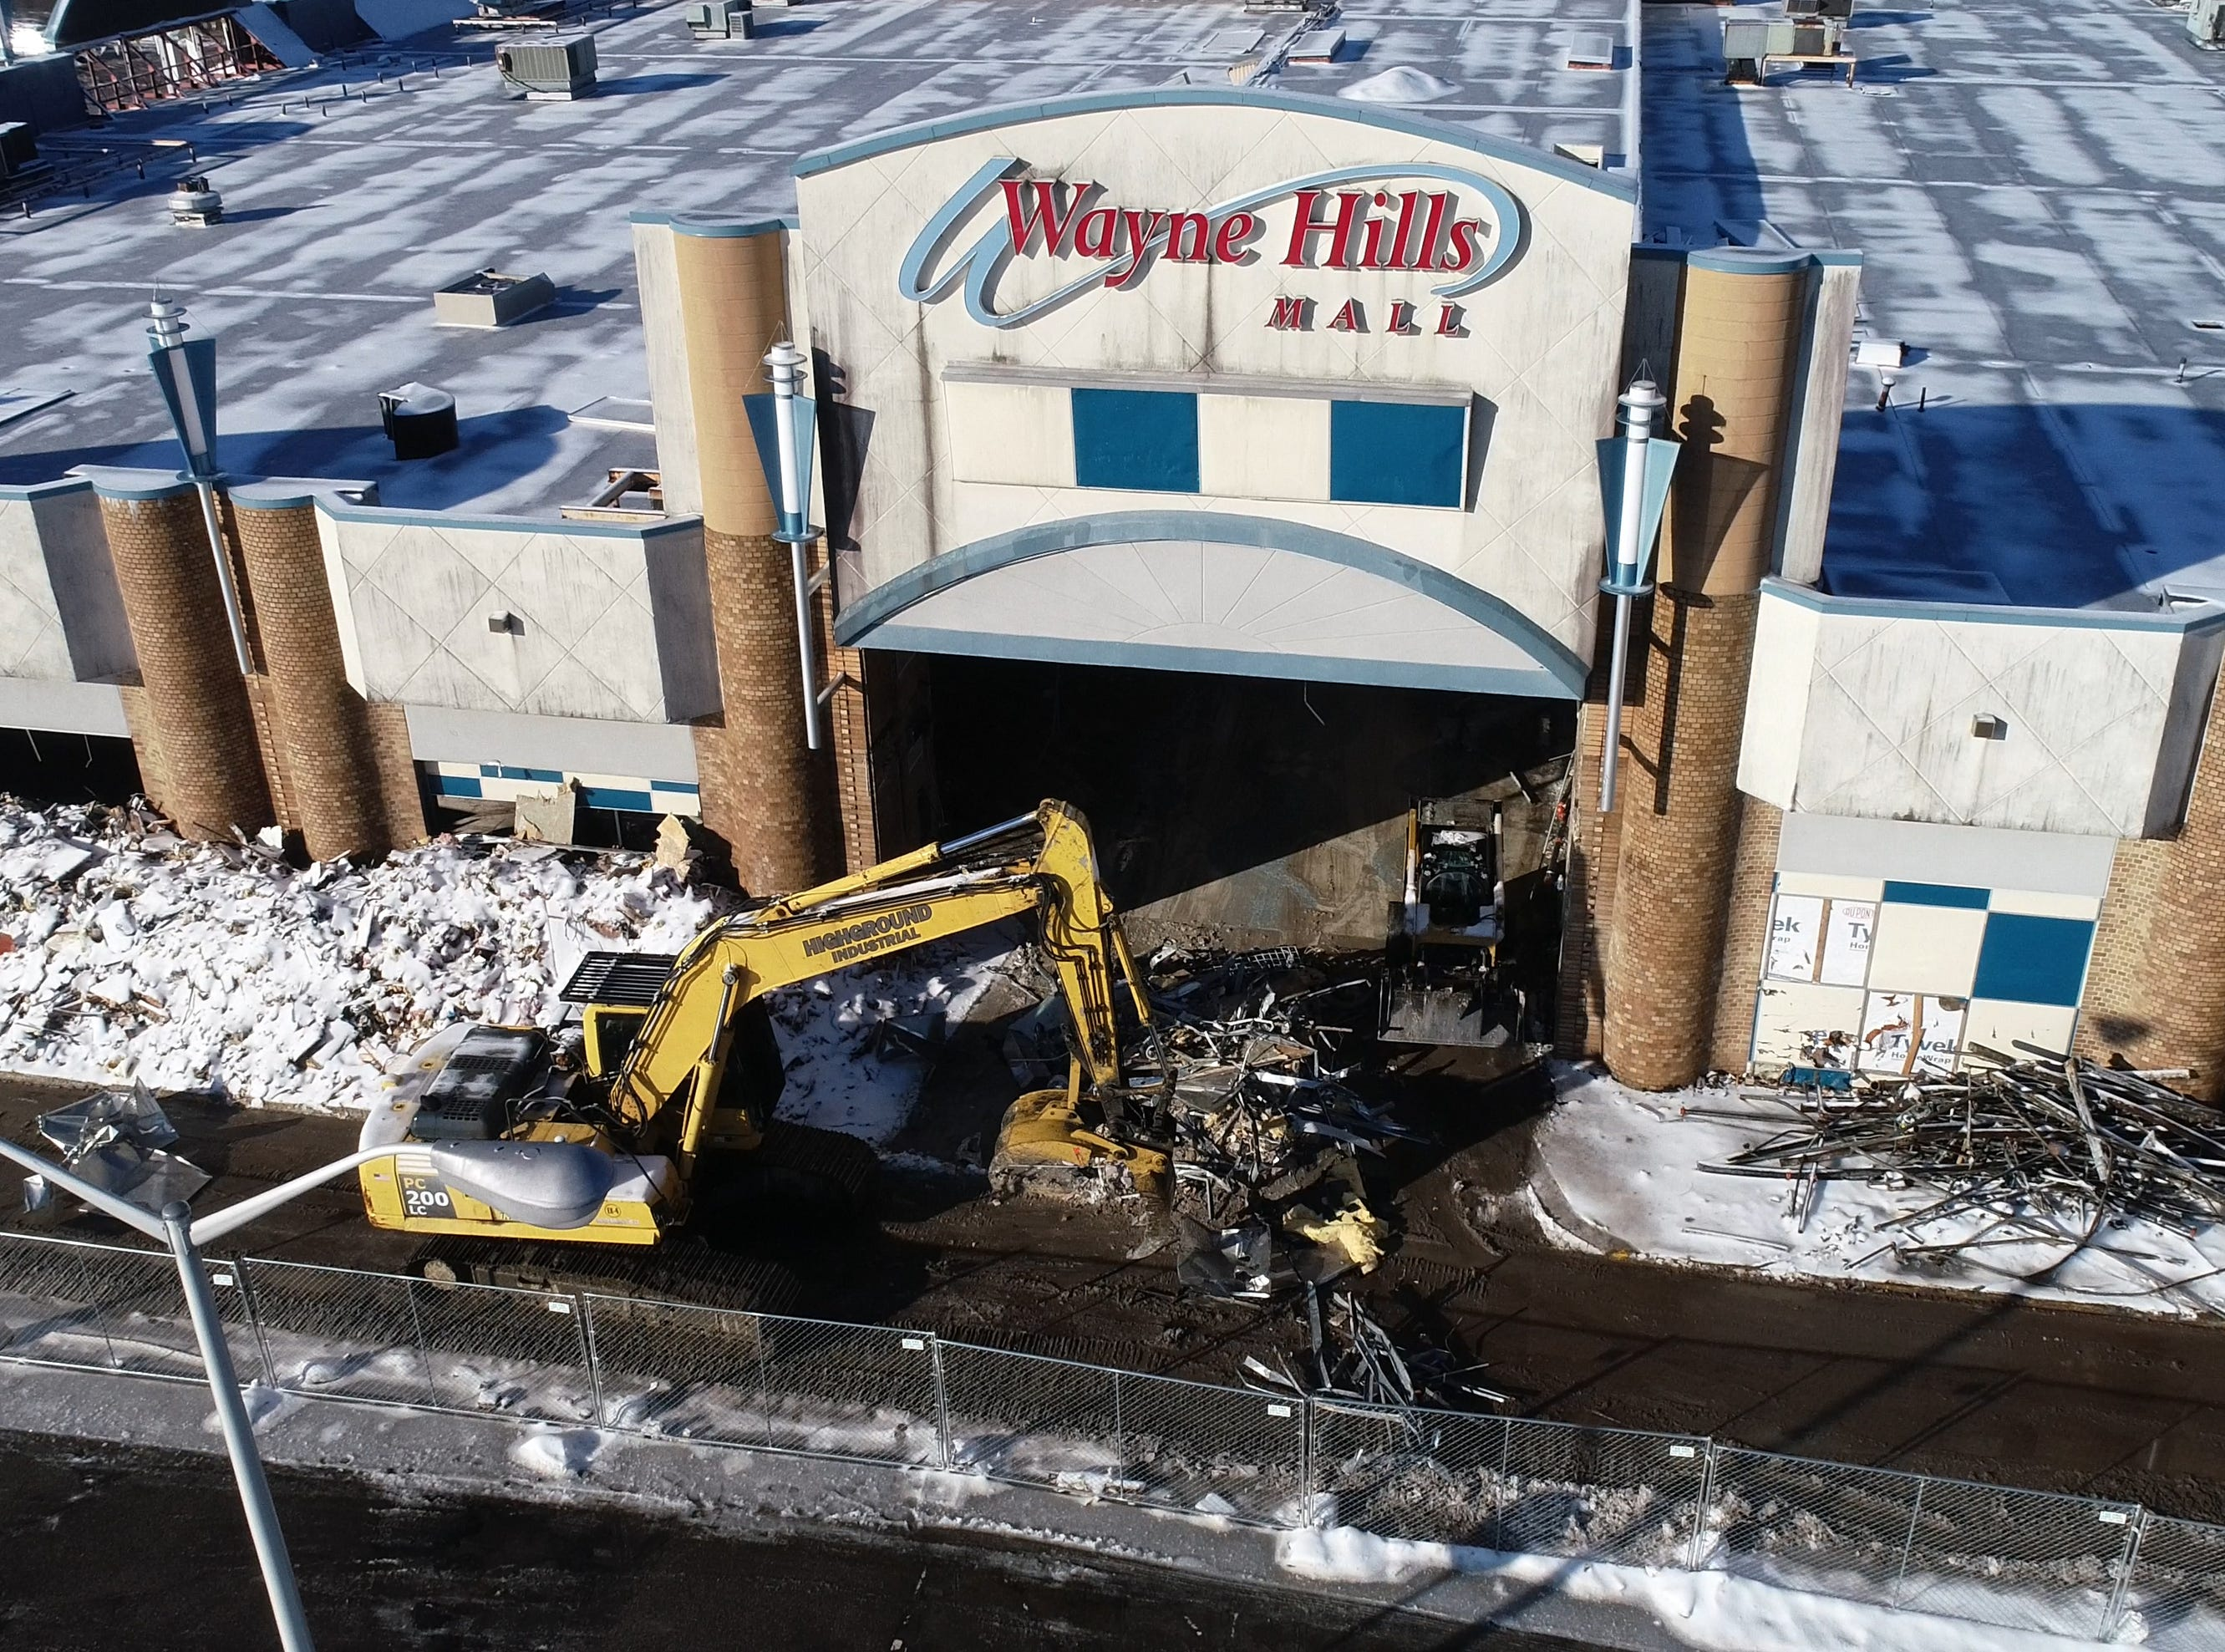 Demolition of the Wayne Hills Mall in Wayne on Thursday February 21, 2019.